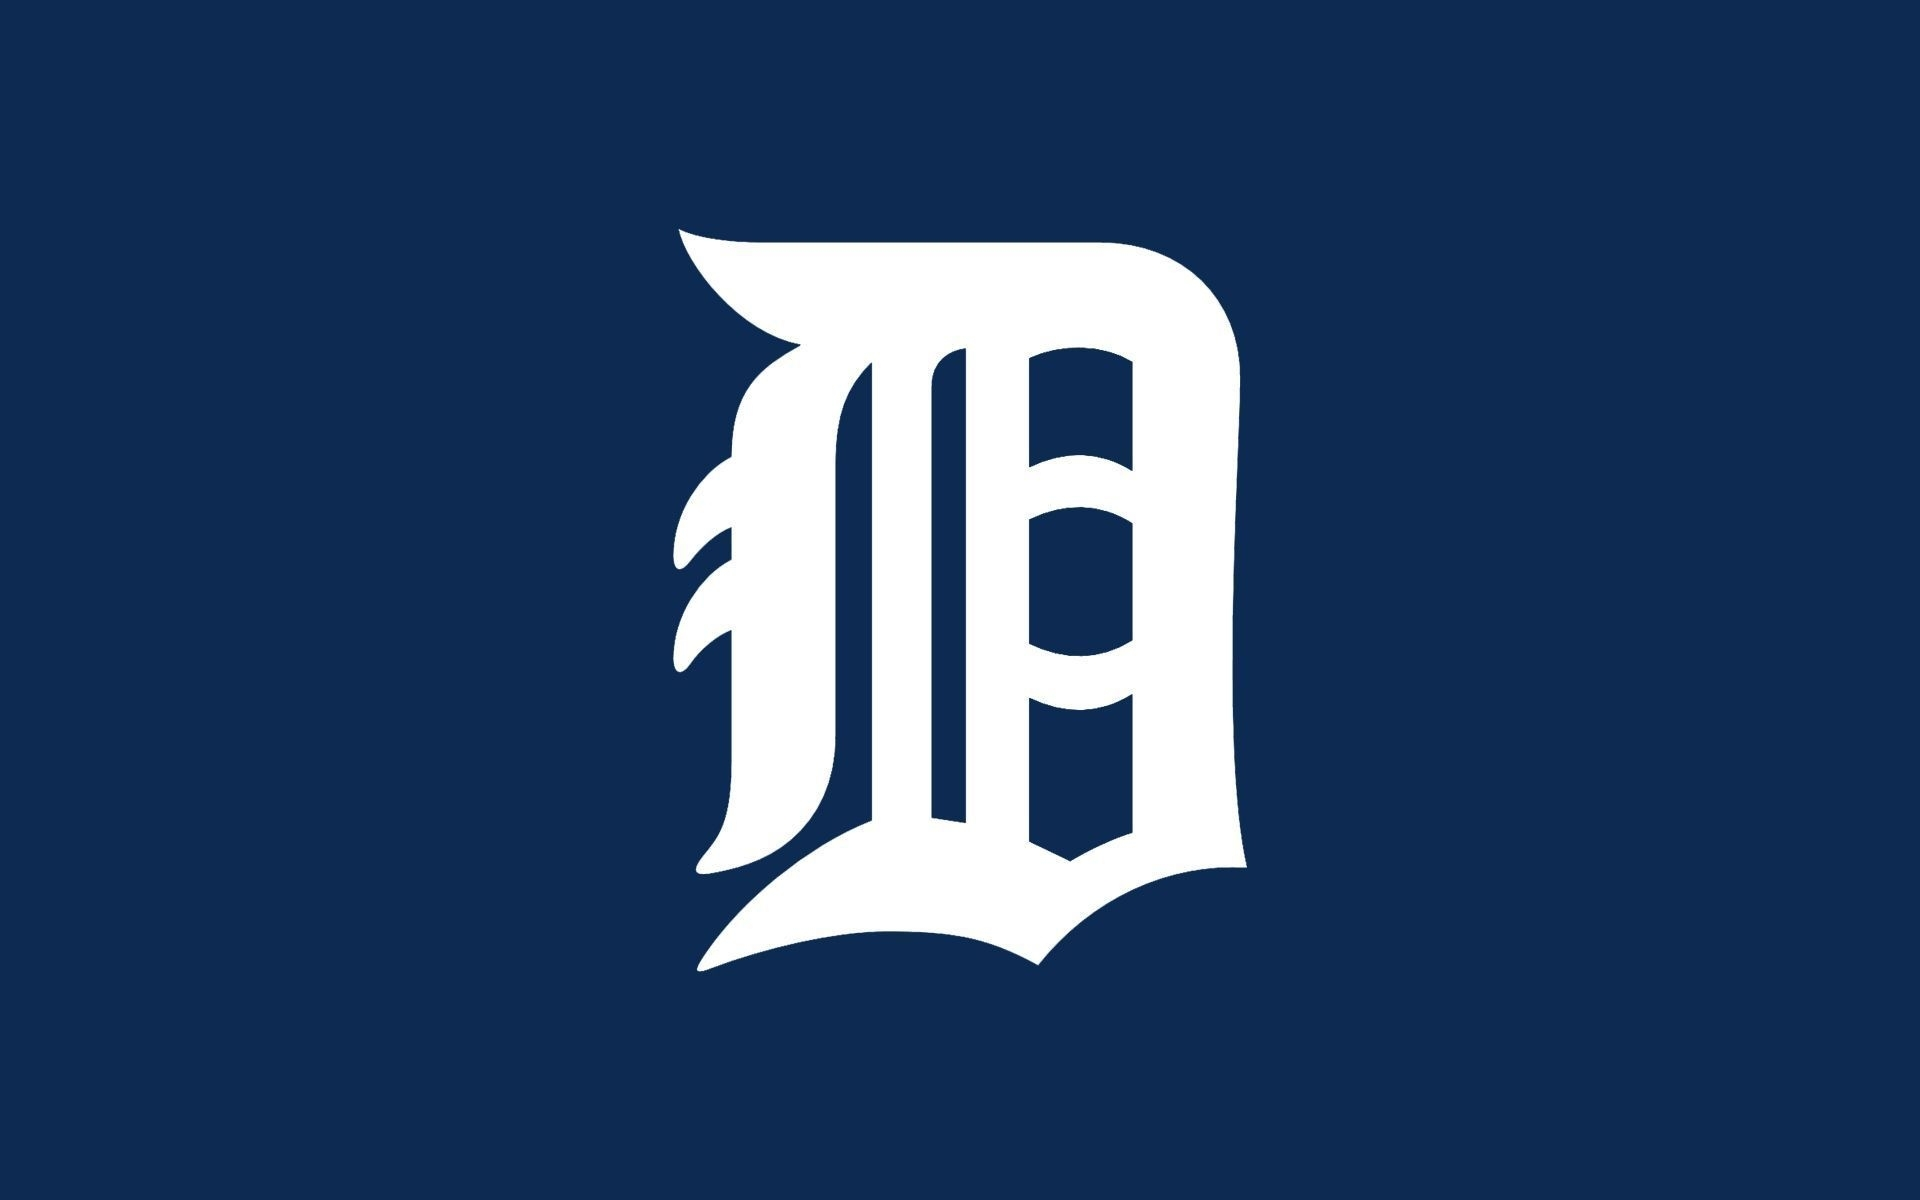 detroit tigers wallpaper — download for free